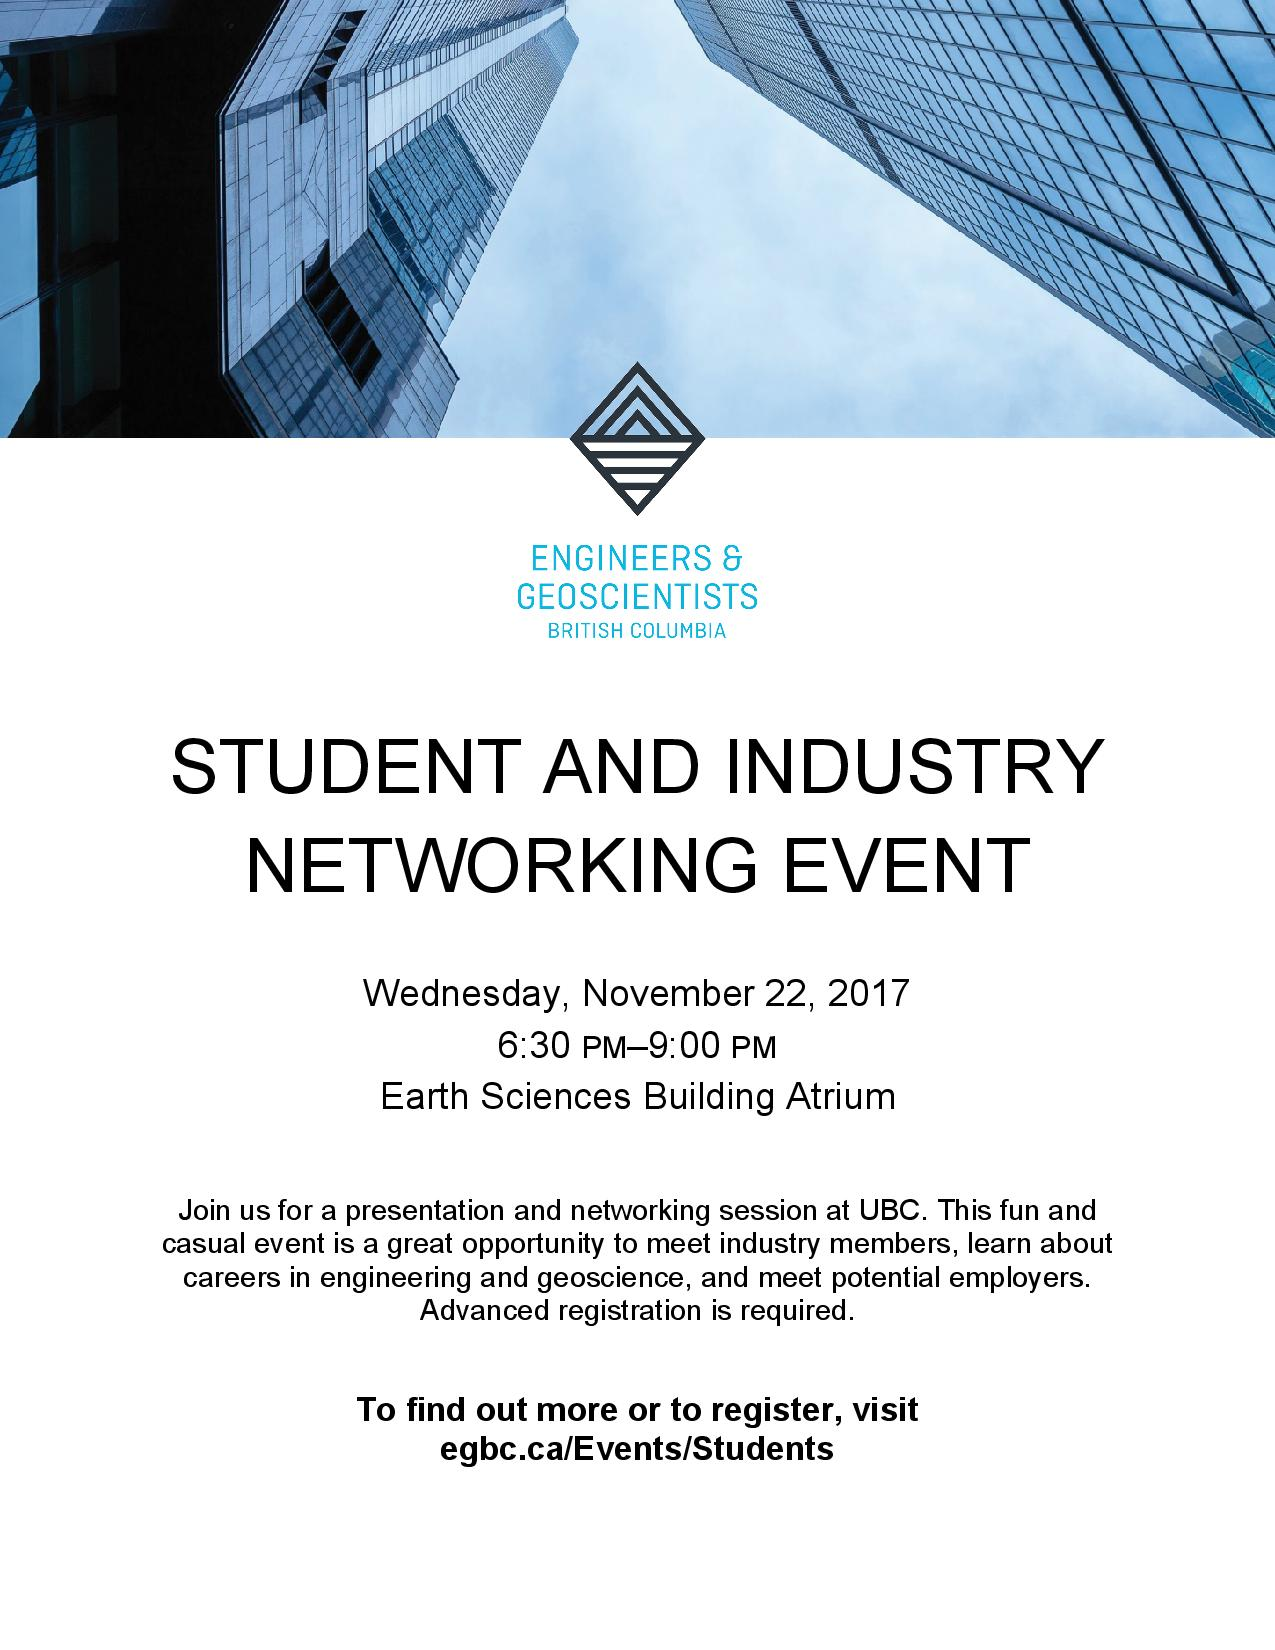 Student and Industry Networking Event